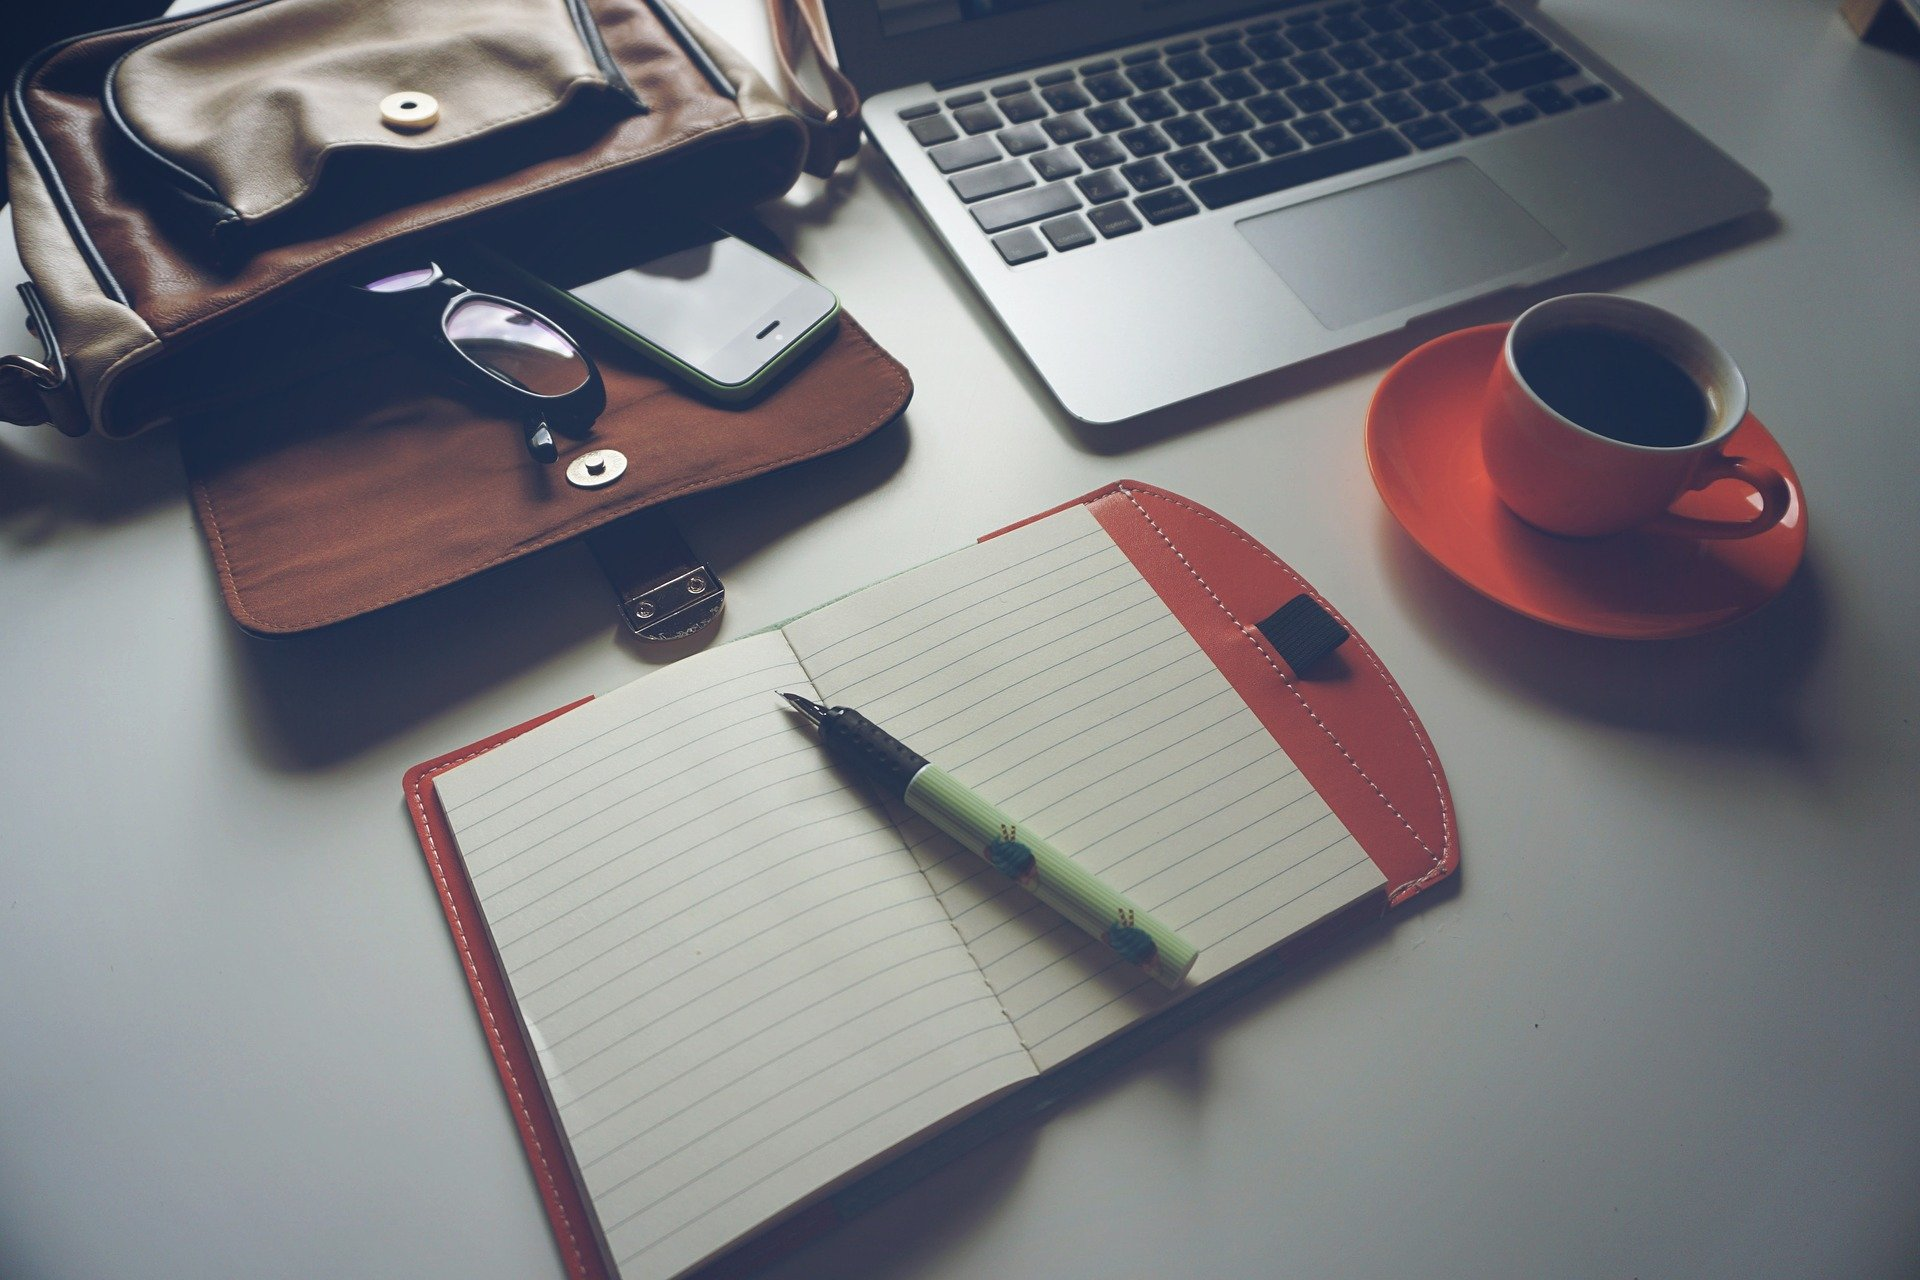 Image of a notebook, pen, laptop, coffee cup, and bag laid out on a table.